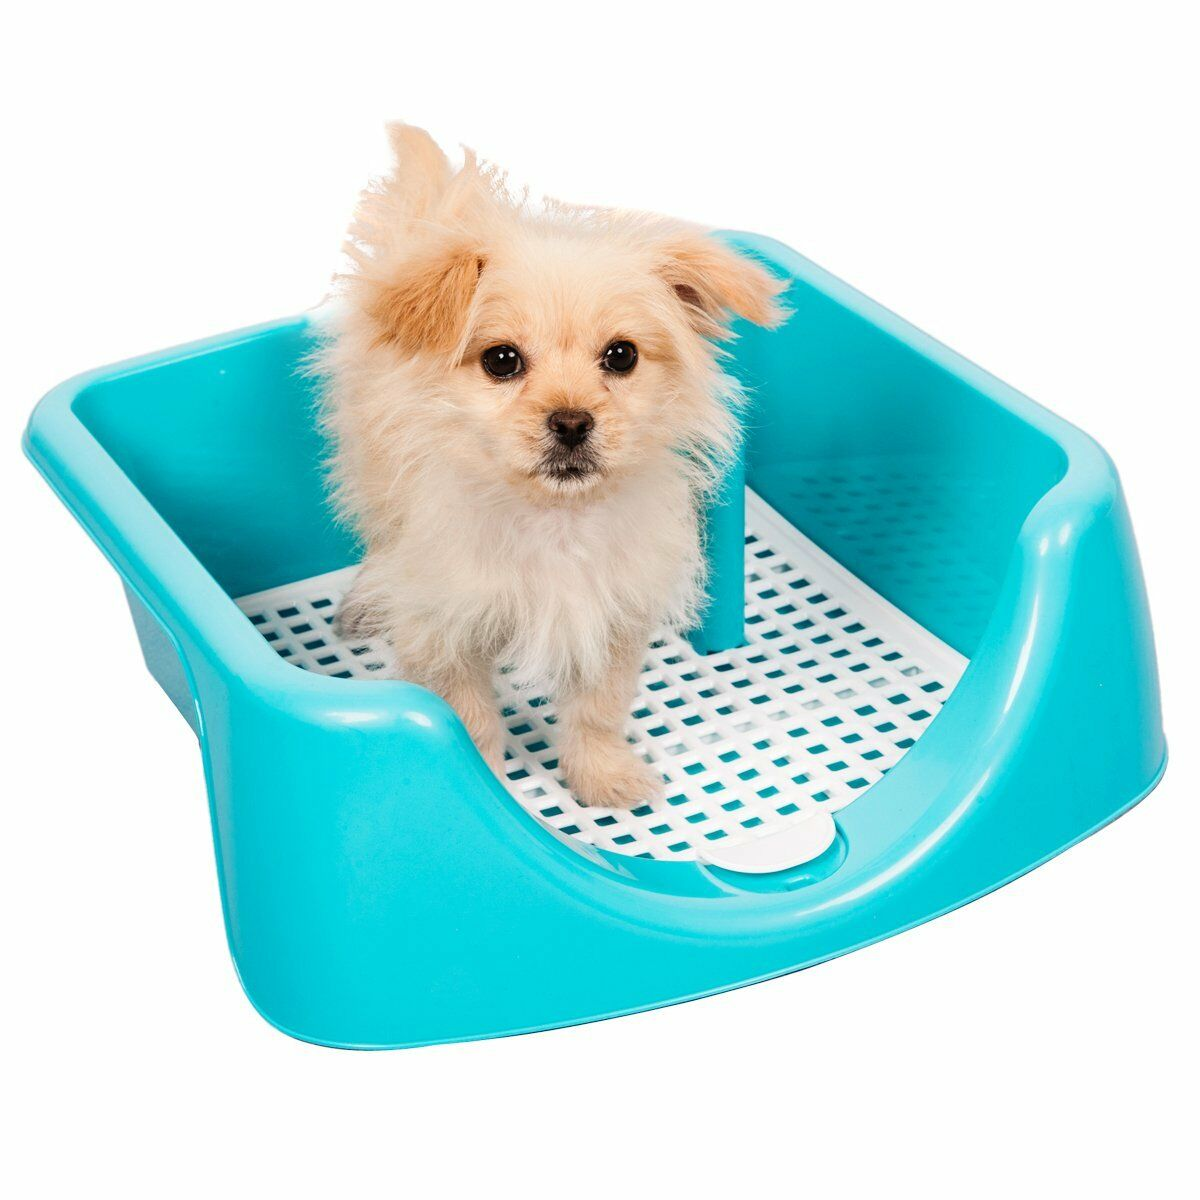 High Fence Dog Training Tray with Post Included